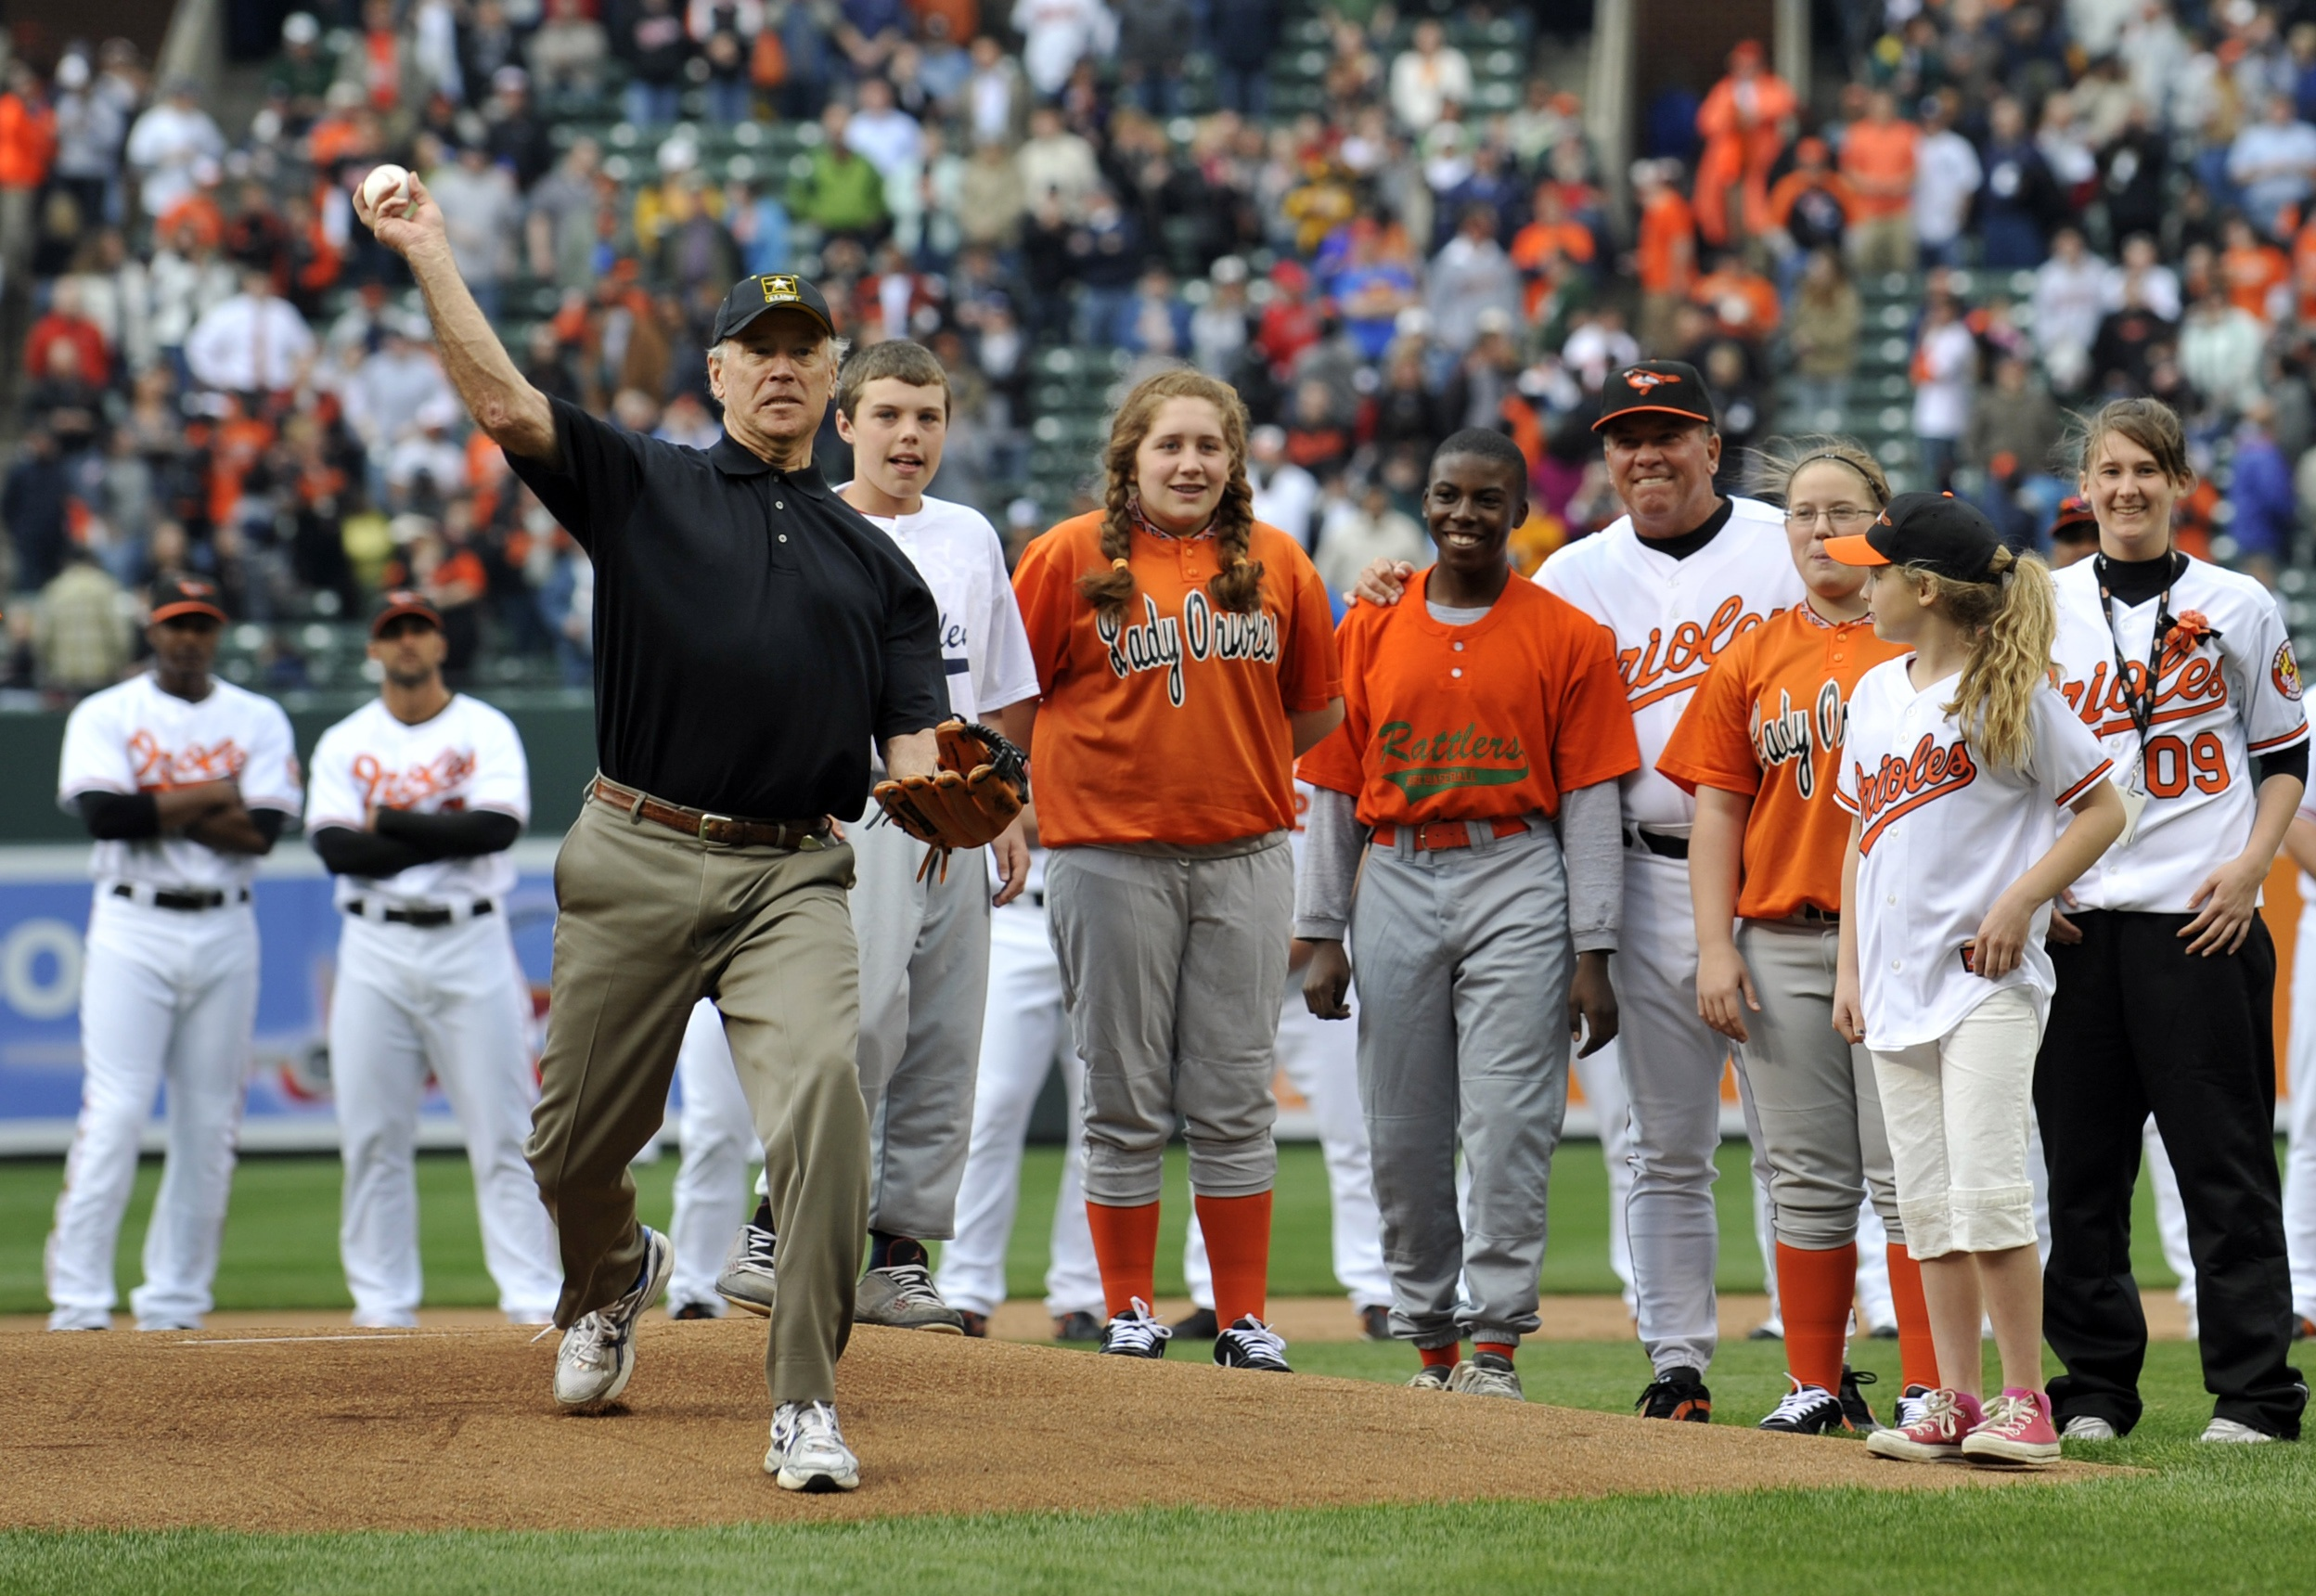 Then-vice president Joe Biden throws out the first pitch on Opening Day at Camden Yards in Baltimore in 2009.